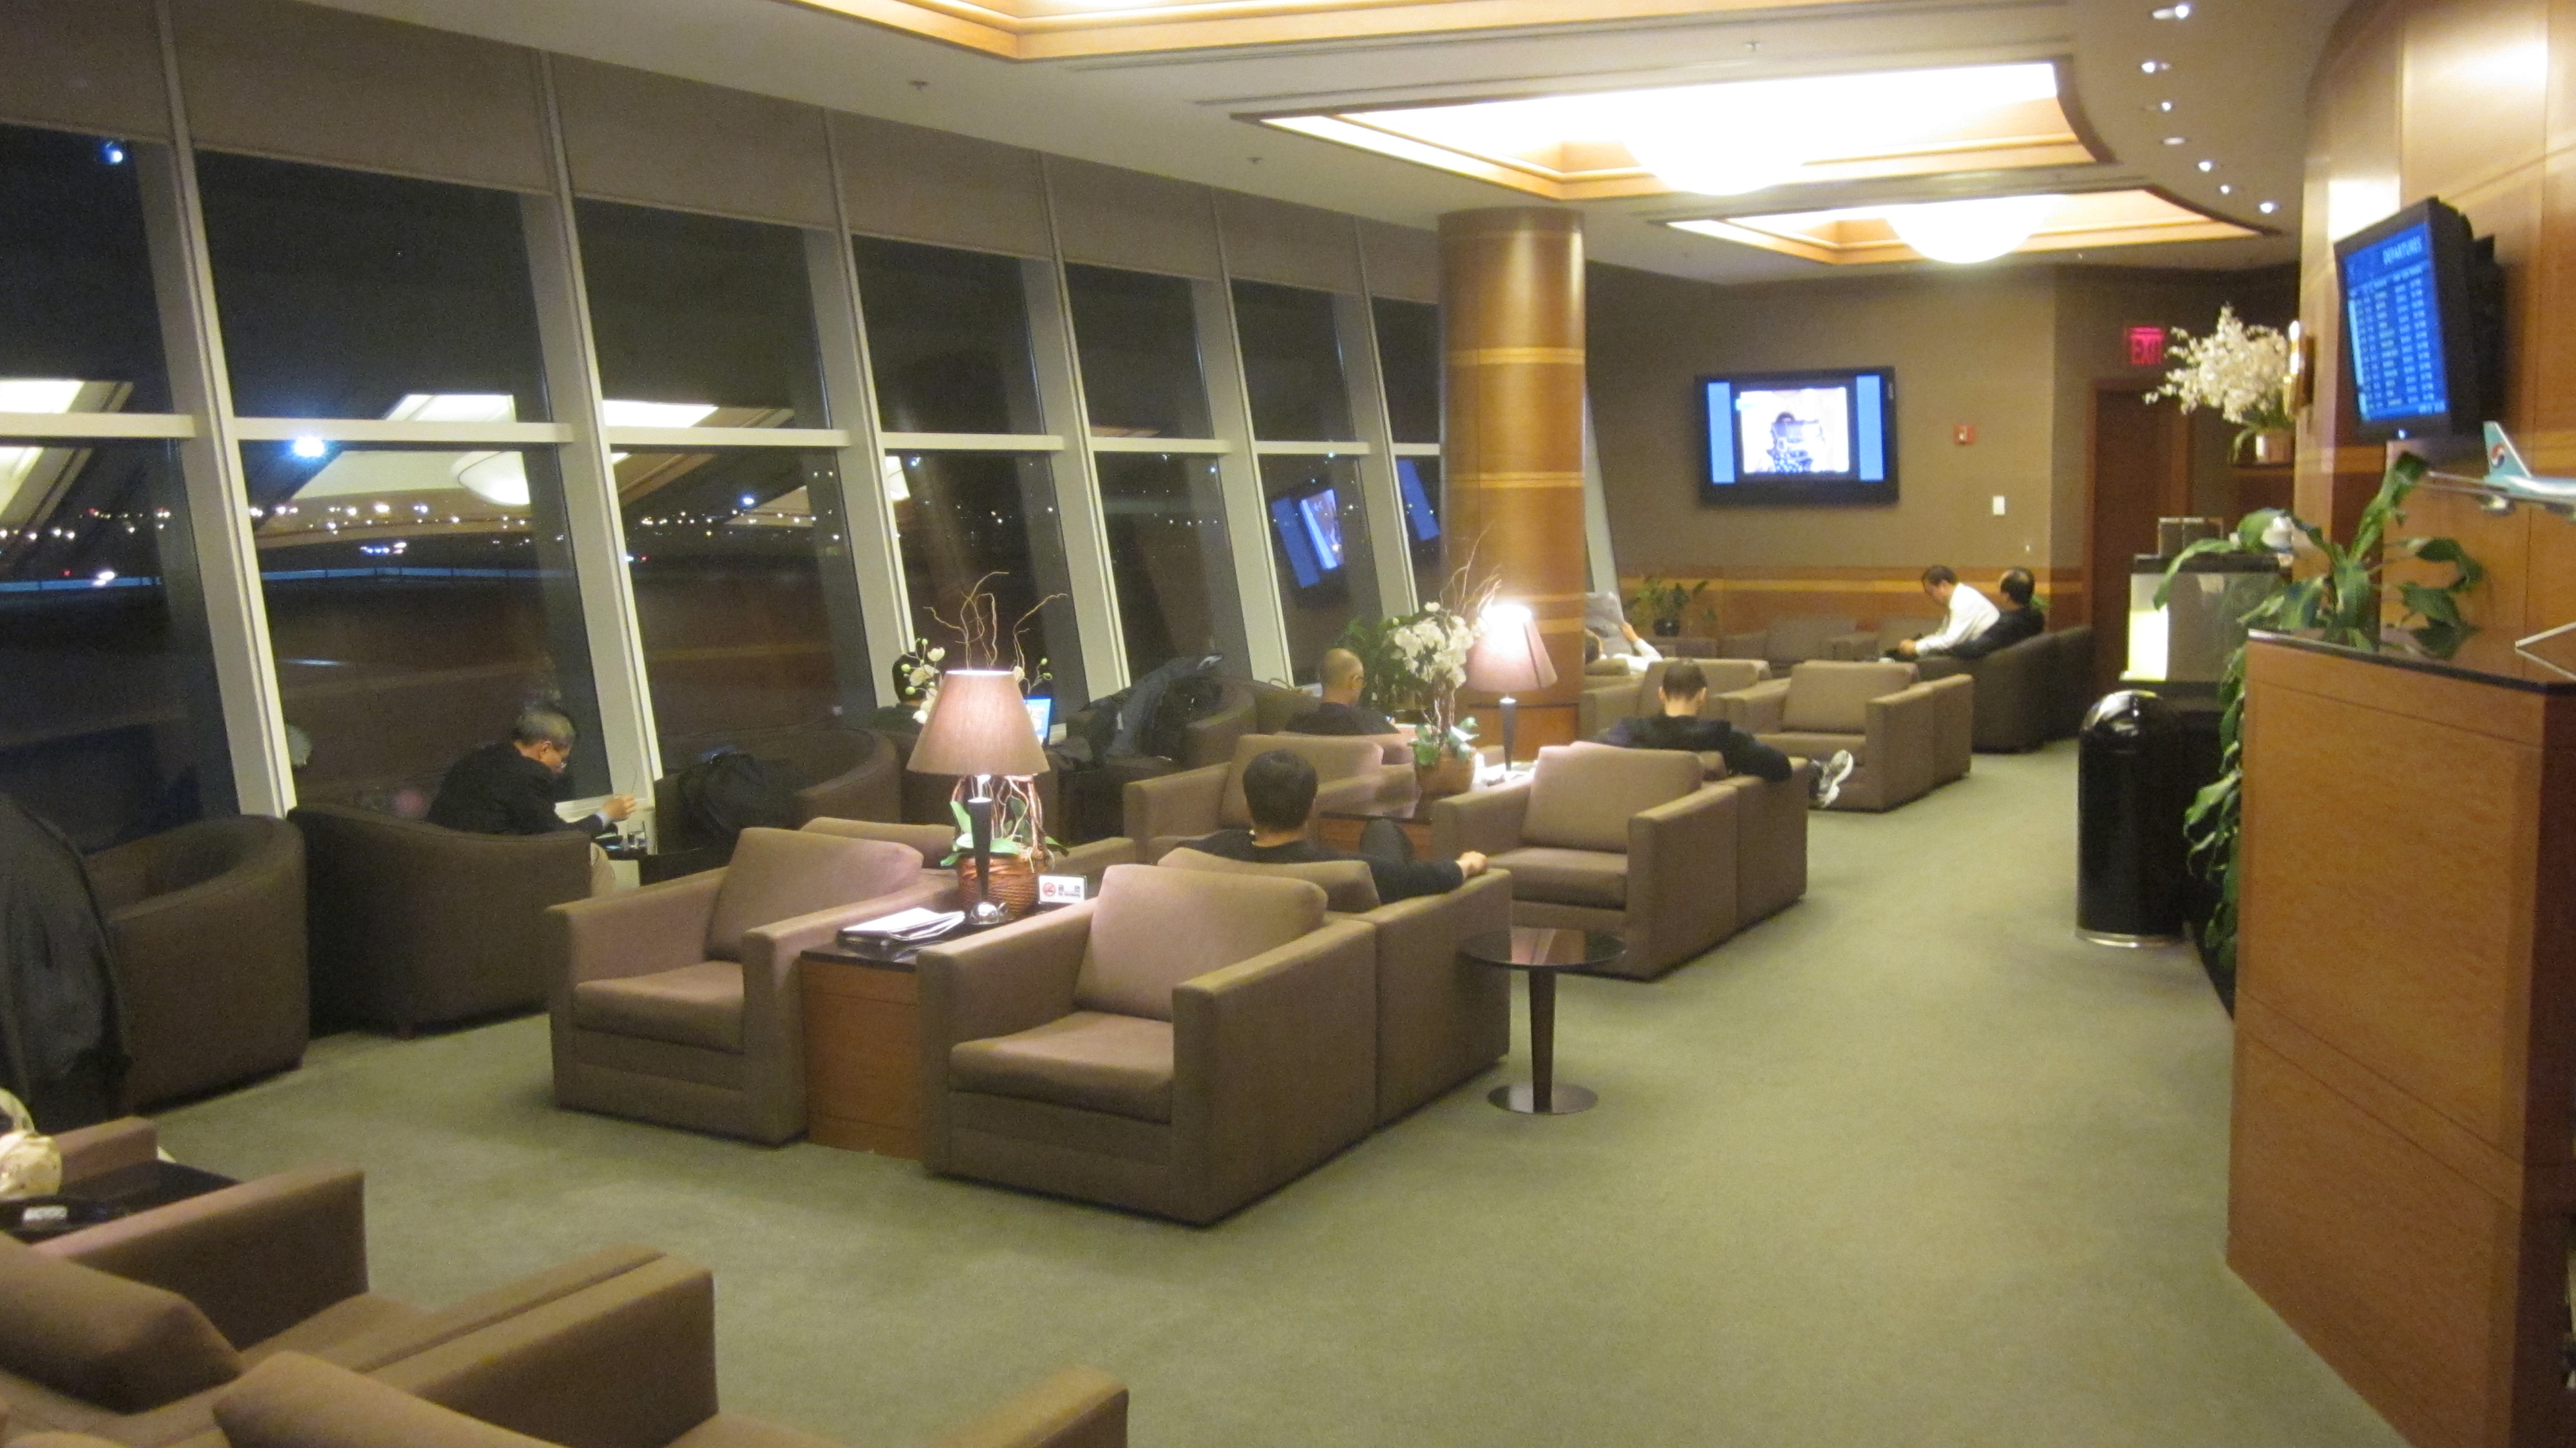 New York JFK lounge surfing KLM The Oasis Air France